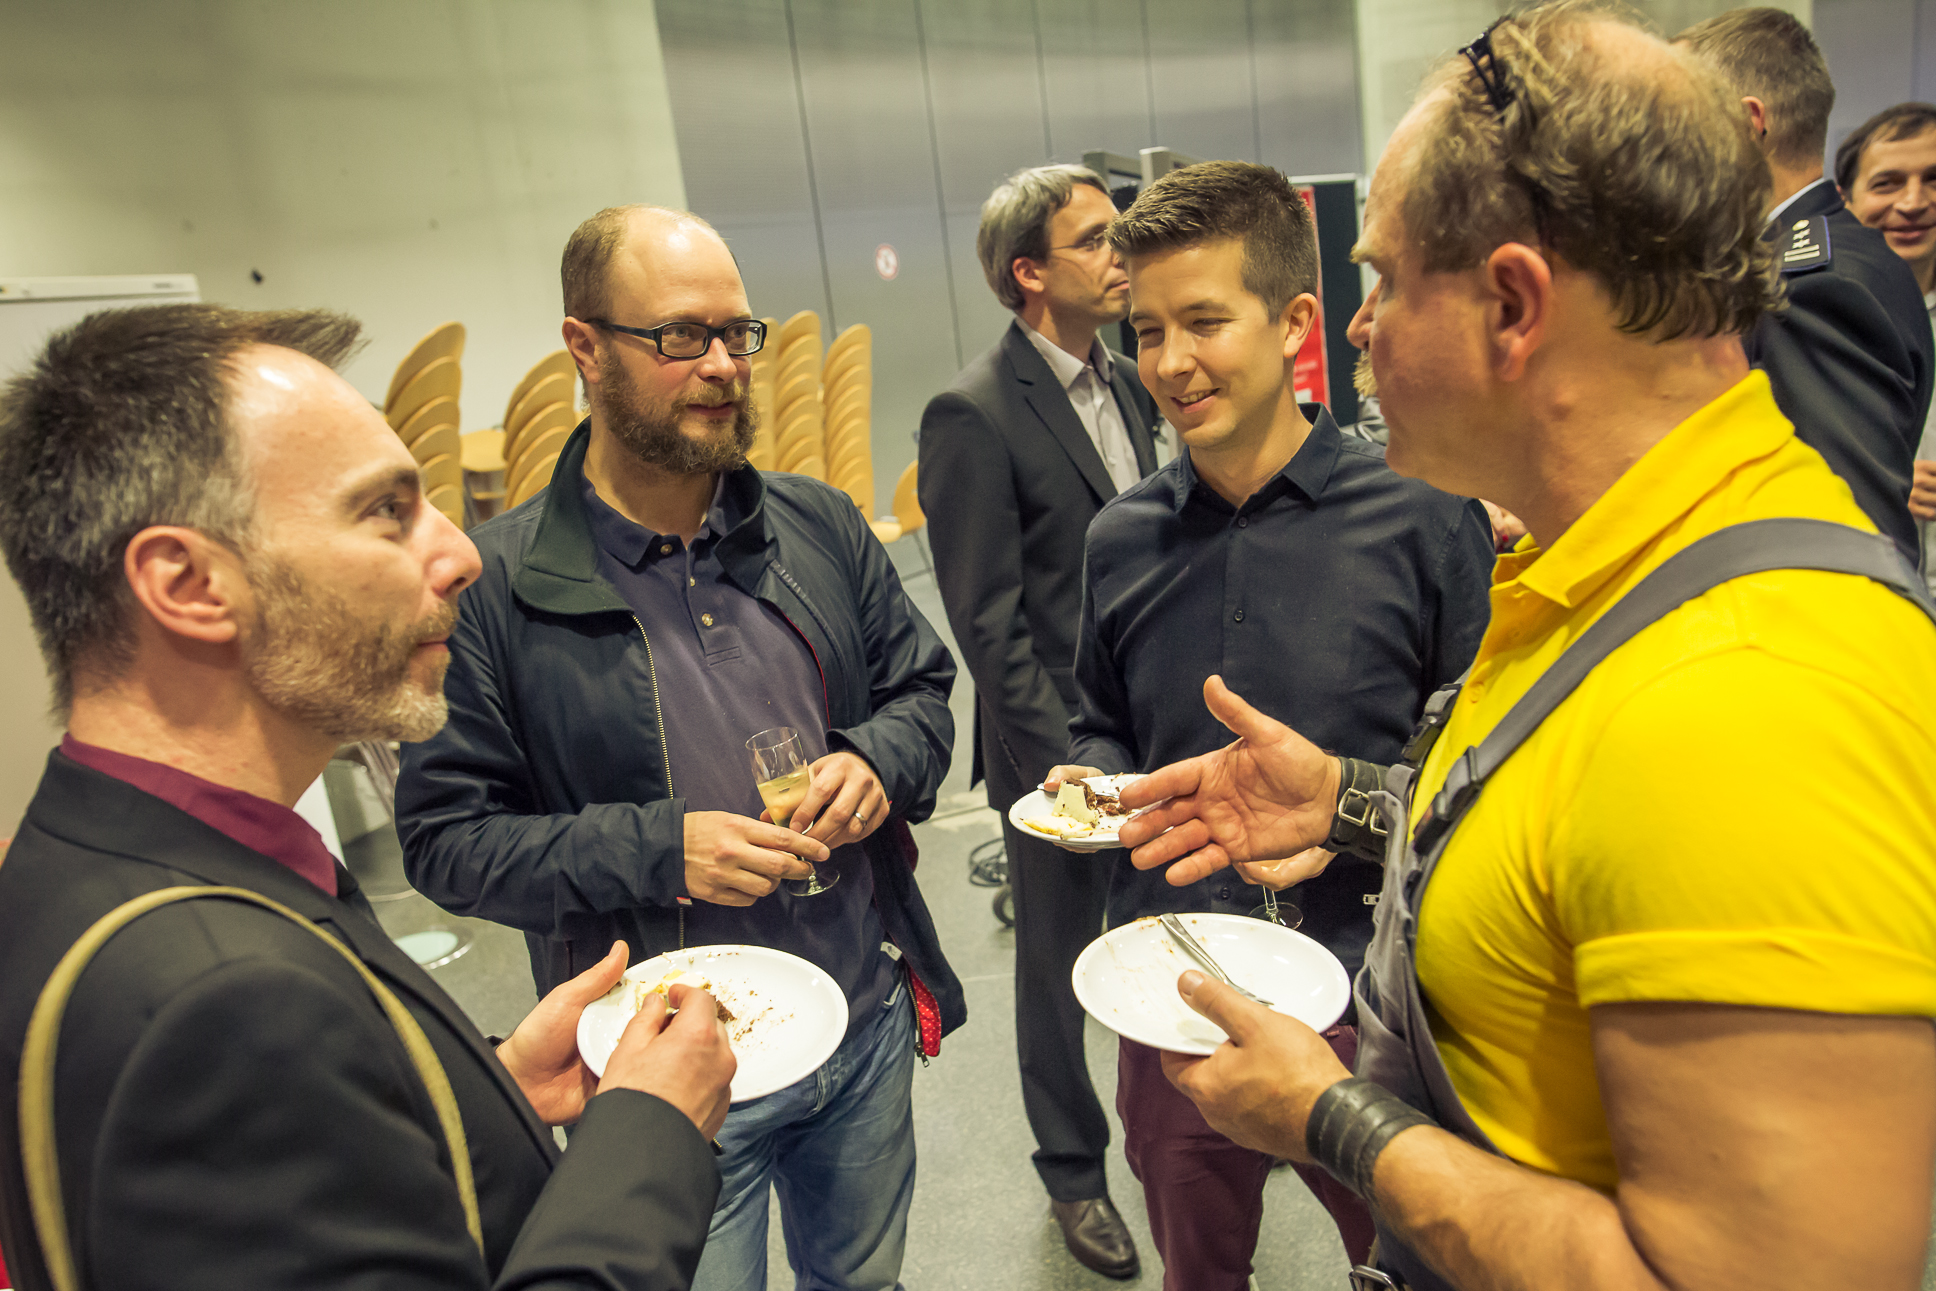 2015.10.09 - 5 Jahre BeeSecure-285